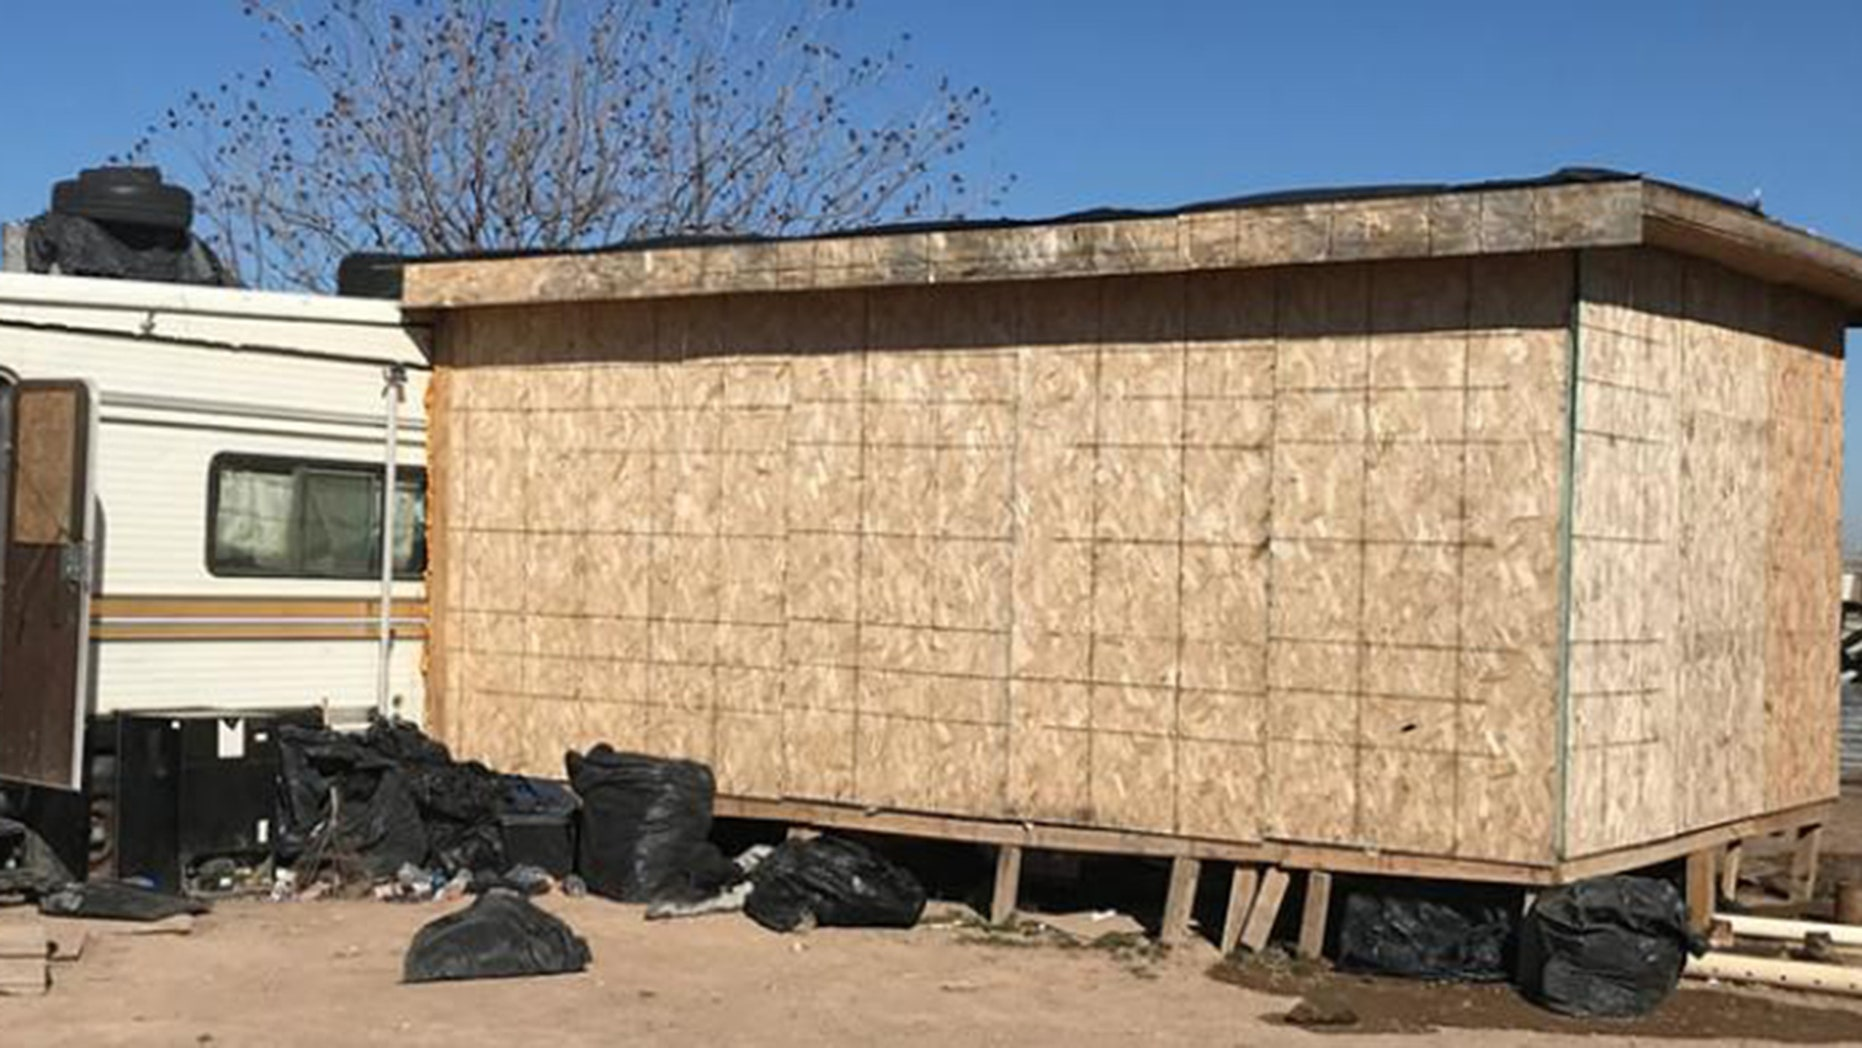 Sixty-seven illegal immigrants were found inside this New Mexico shed in deplorable conditions.